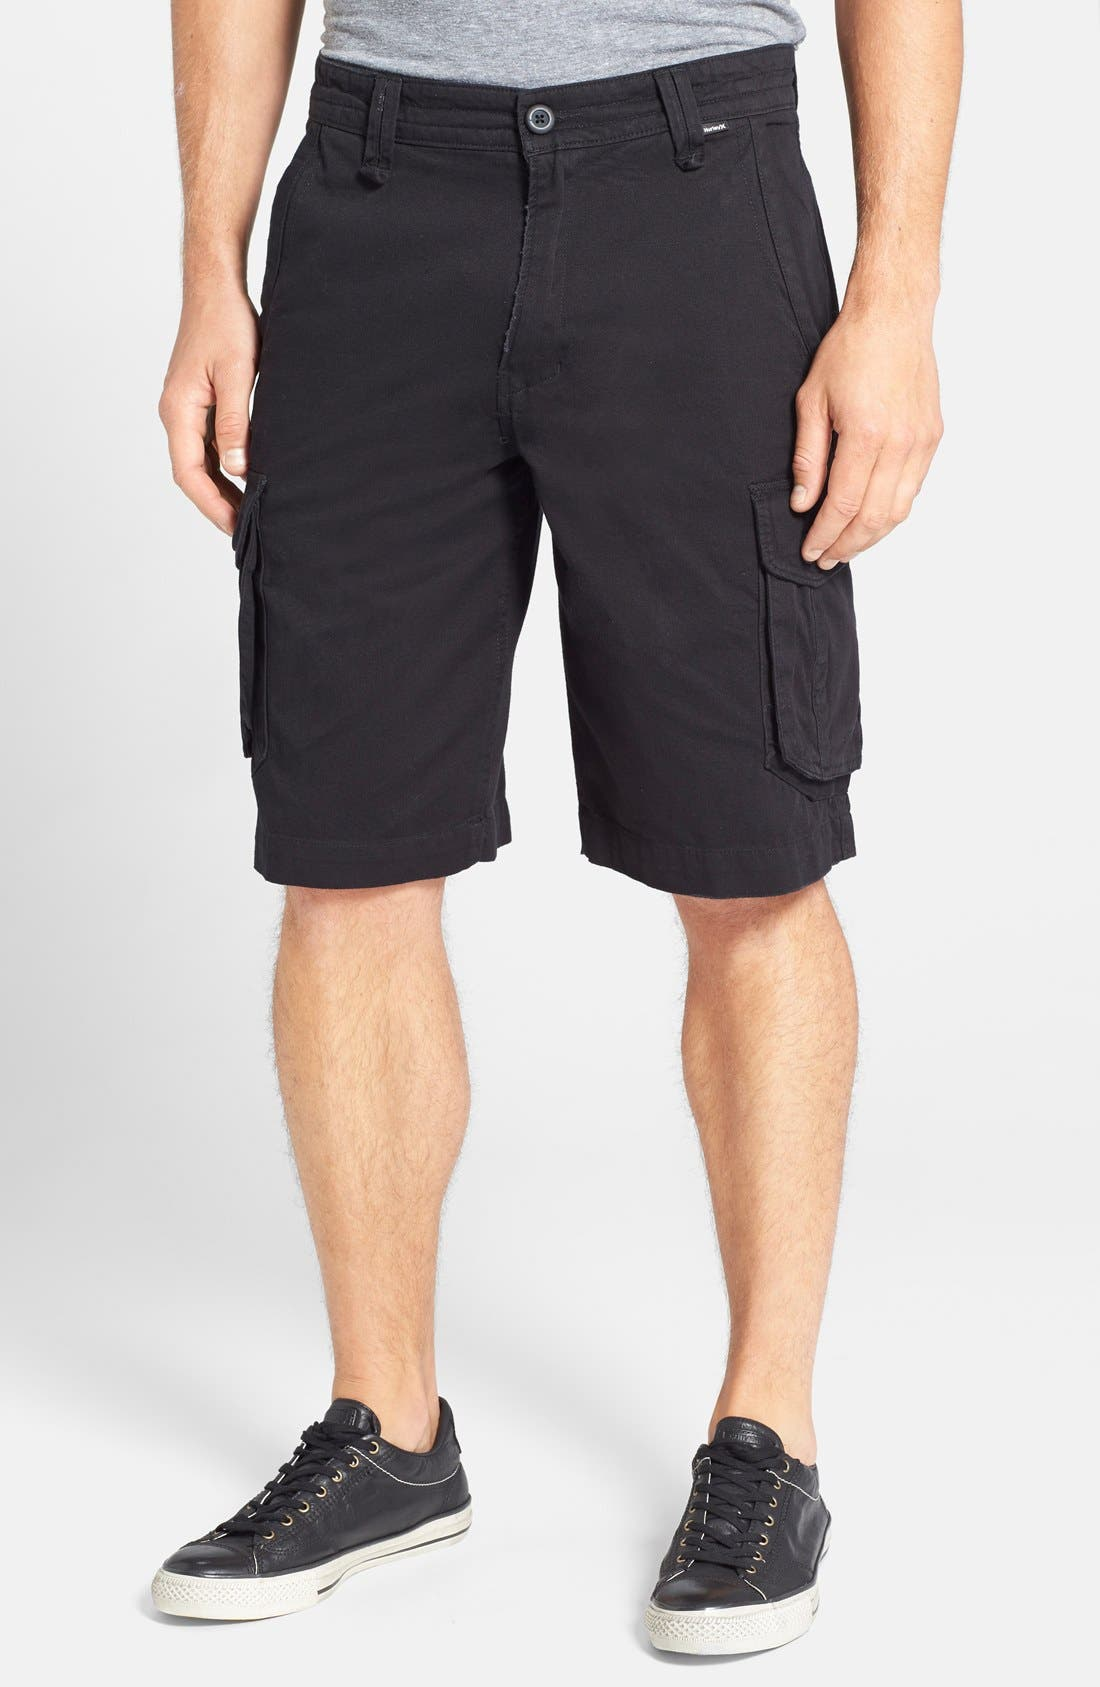 Alternate Image 1 Selected - Hurley 'One & Only' Cargo Shorts